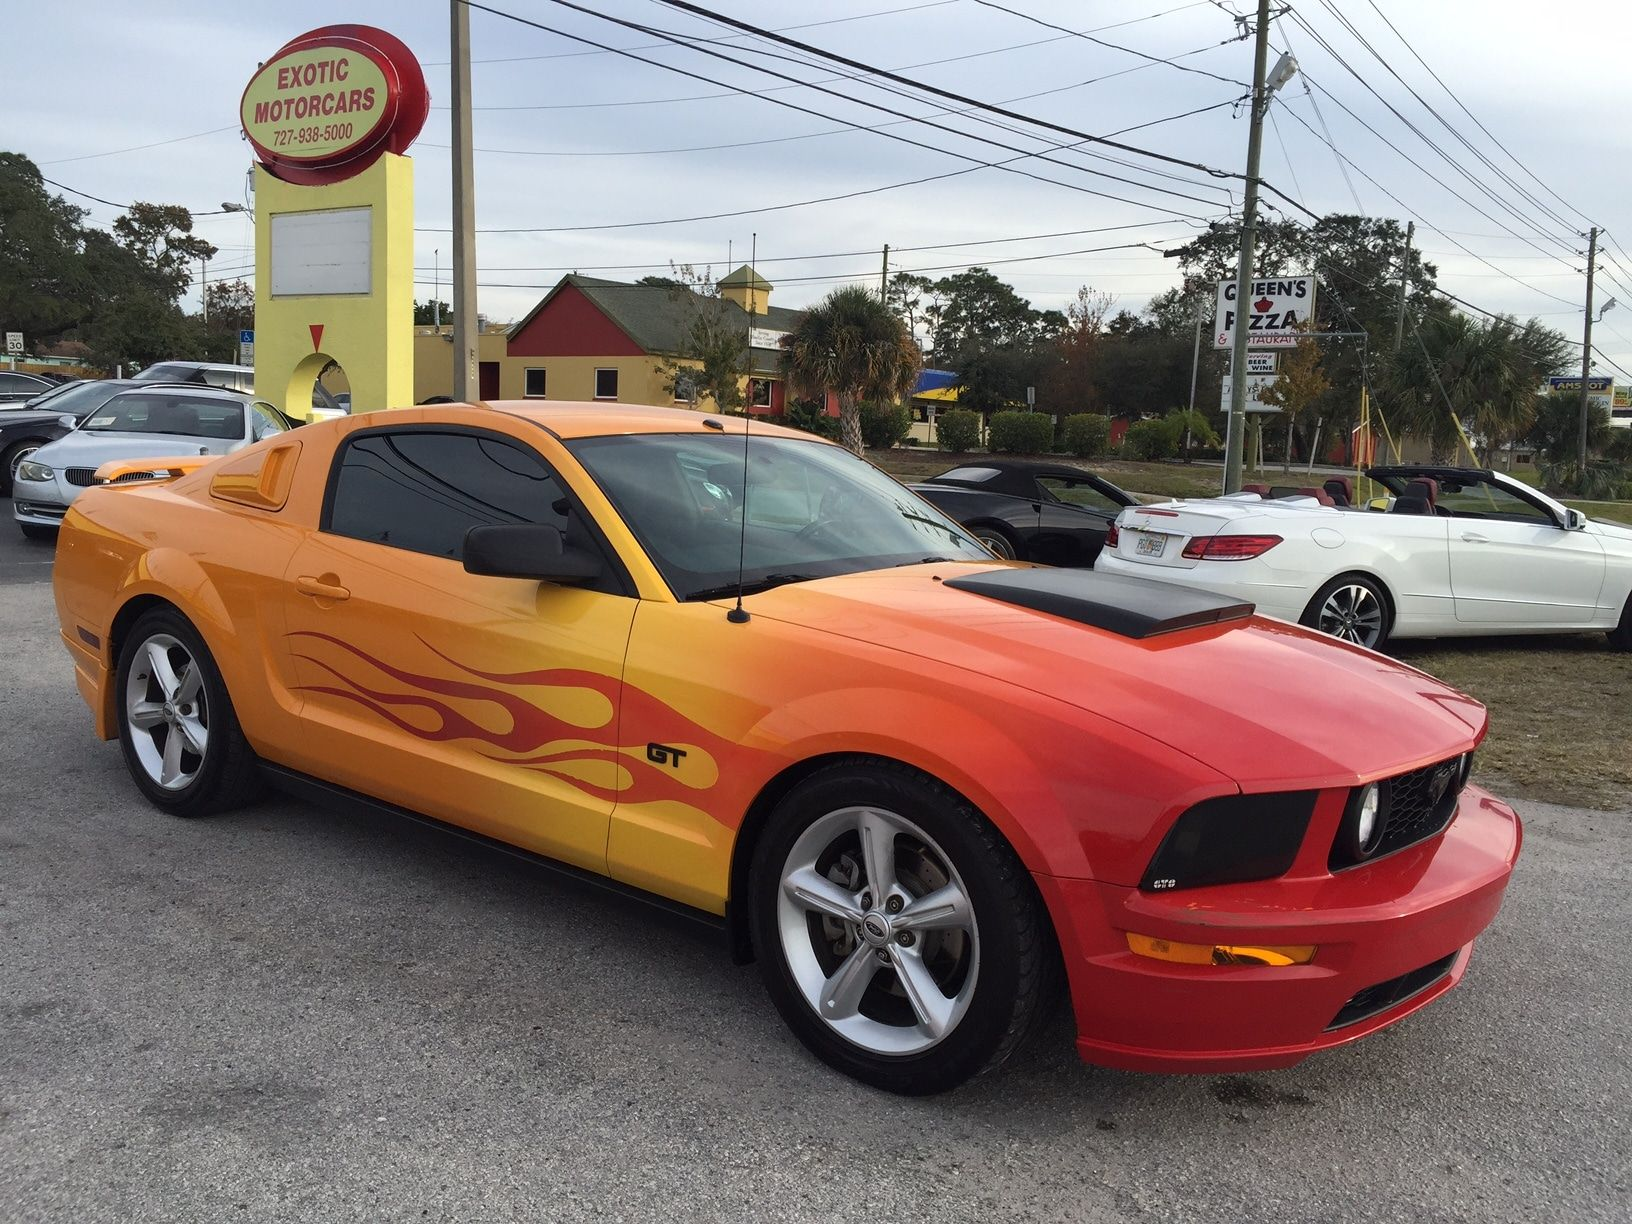 Used Ford Mustang For Sale New Port Richey, FL Page 2 in